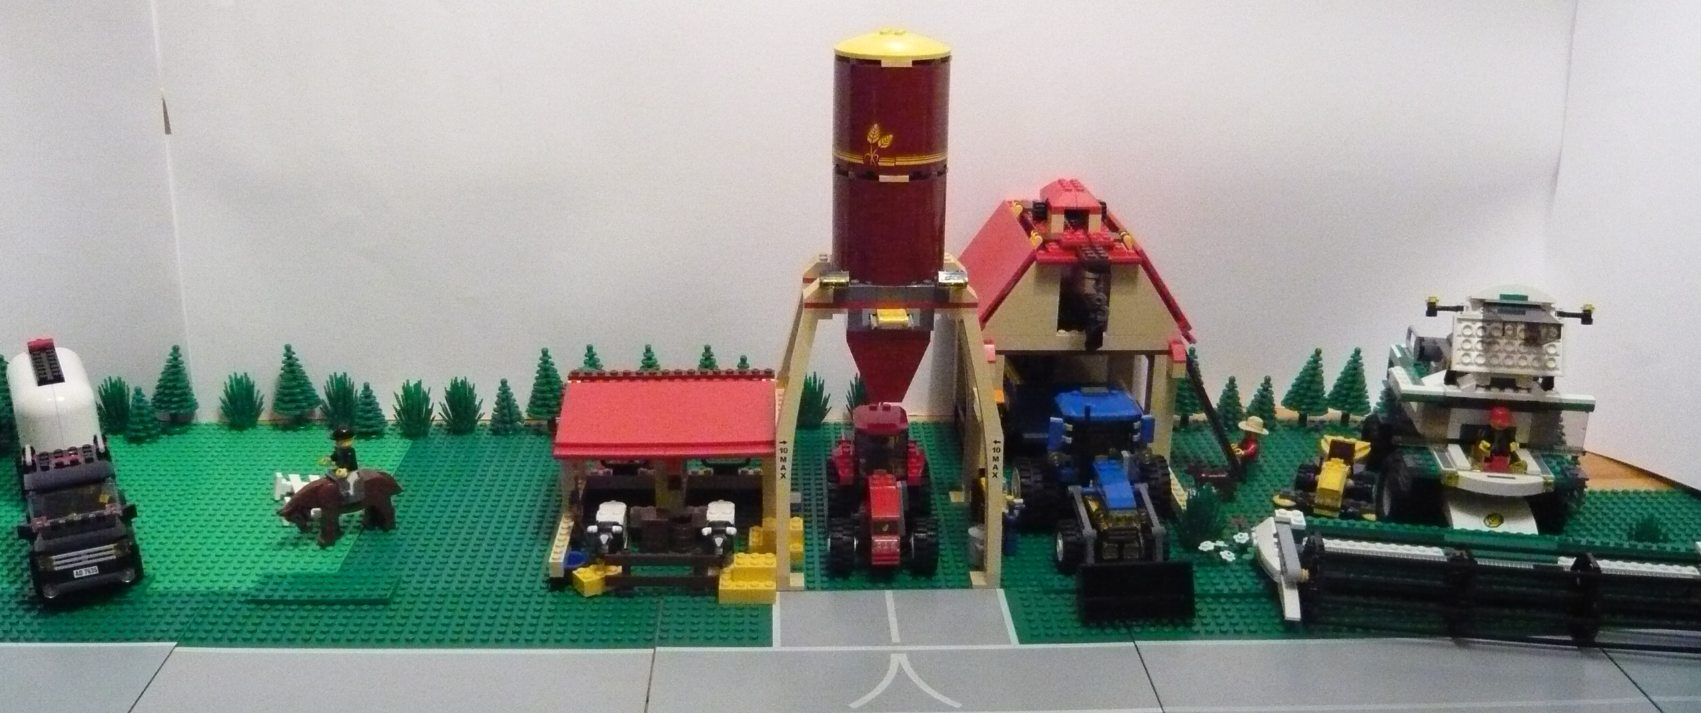 all_farm_sets_2009.jpg